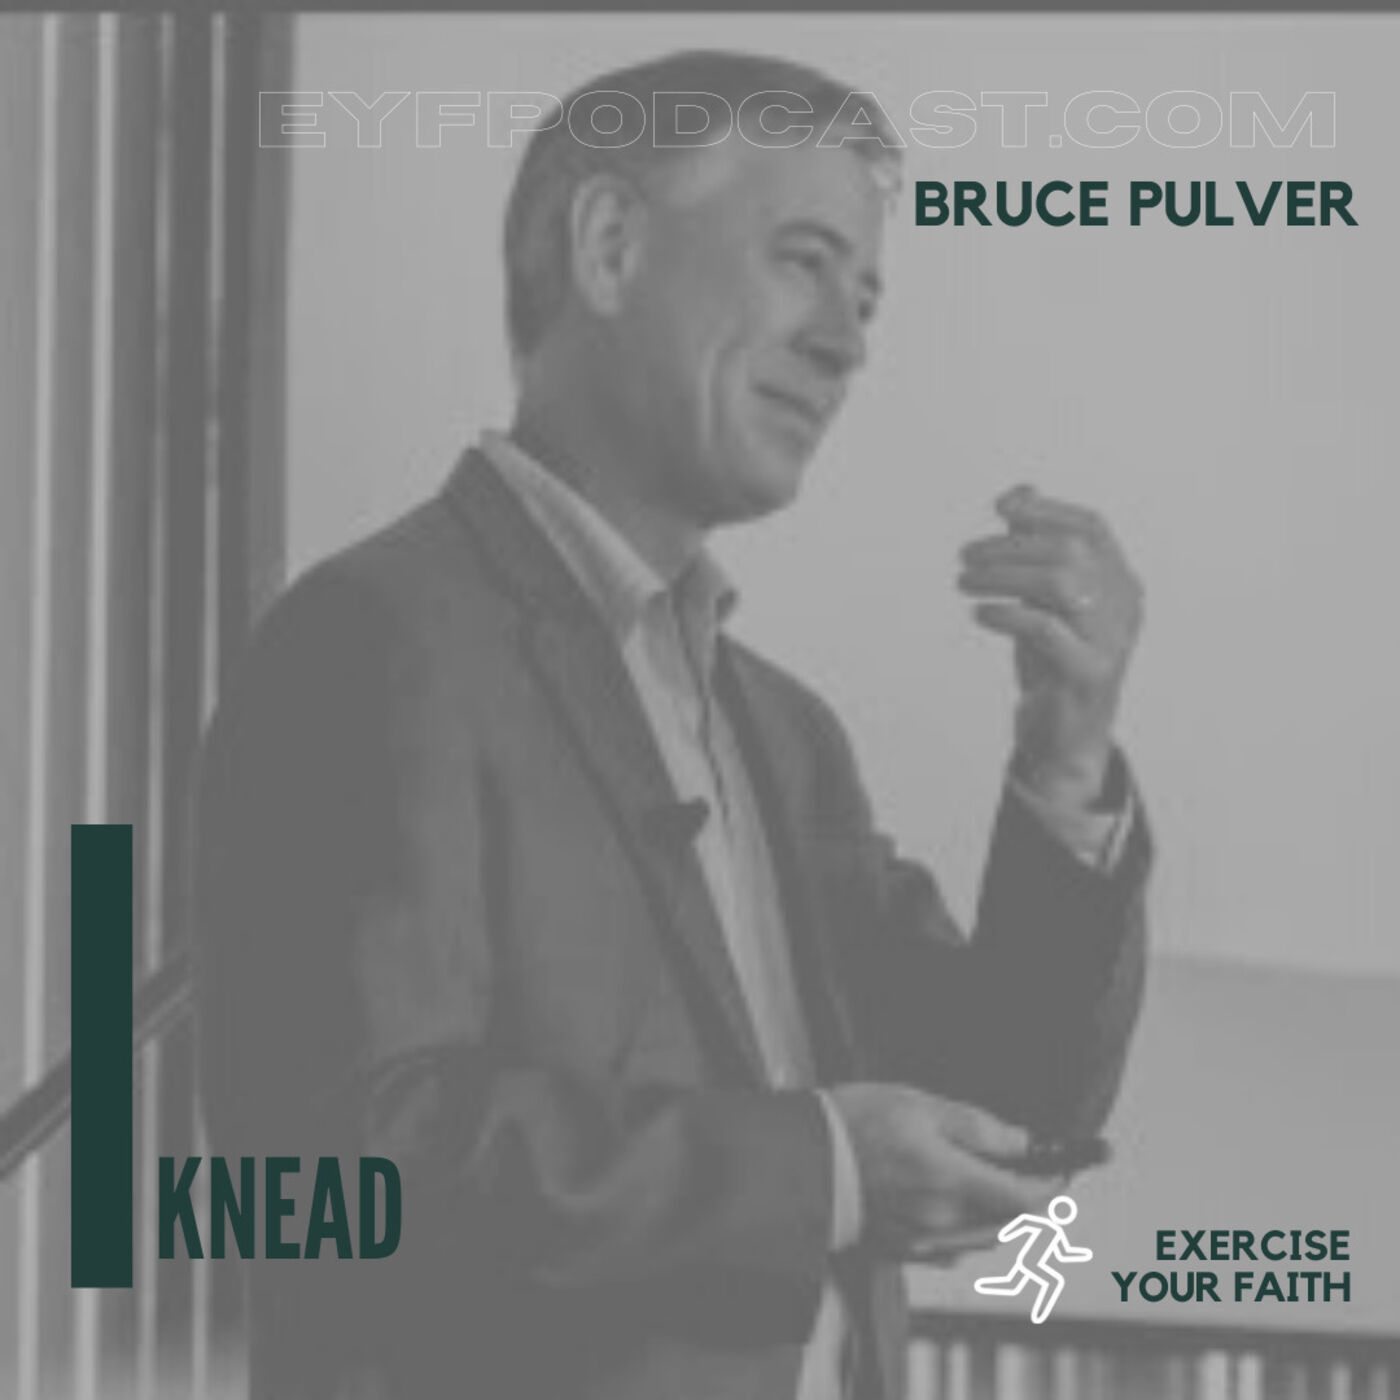 EYFPodcast- Exercise Your faith be Breaking Bread to get what you KNEAD with Bruce Pulver